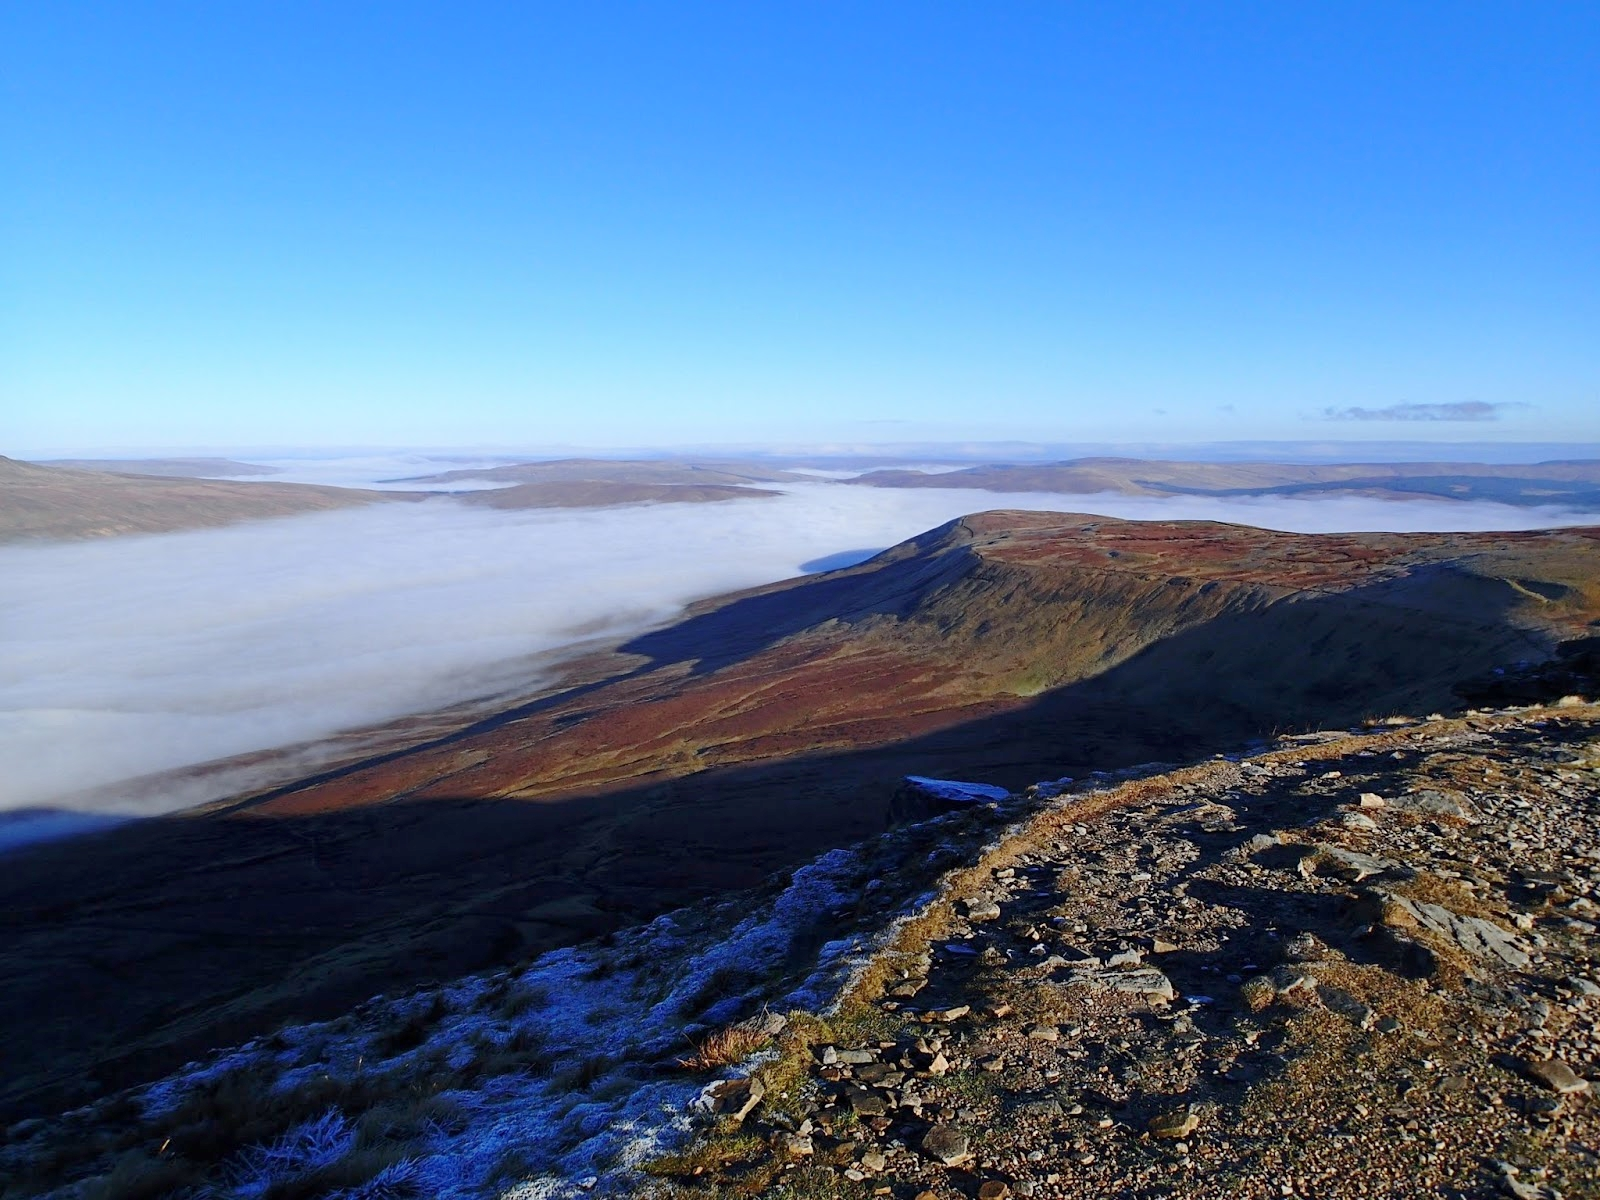 Cloud filling Chapel-le-Dale as seen from Ingleborough gives some idea of how a melting glacier may have appeared 16,000 years ago during the last glaciation. John Cordingley